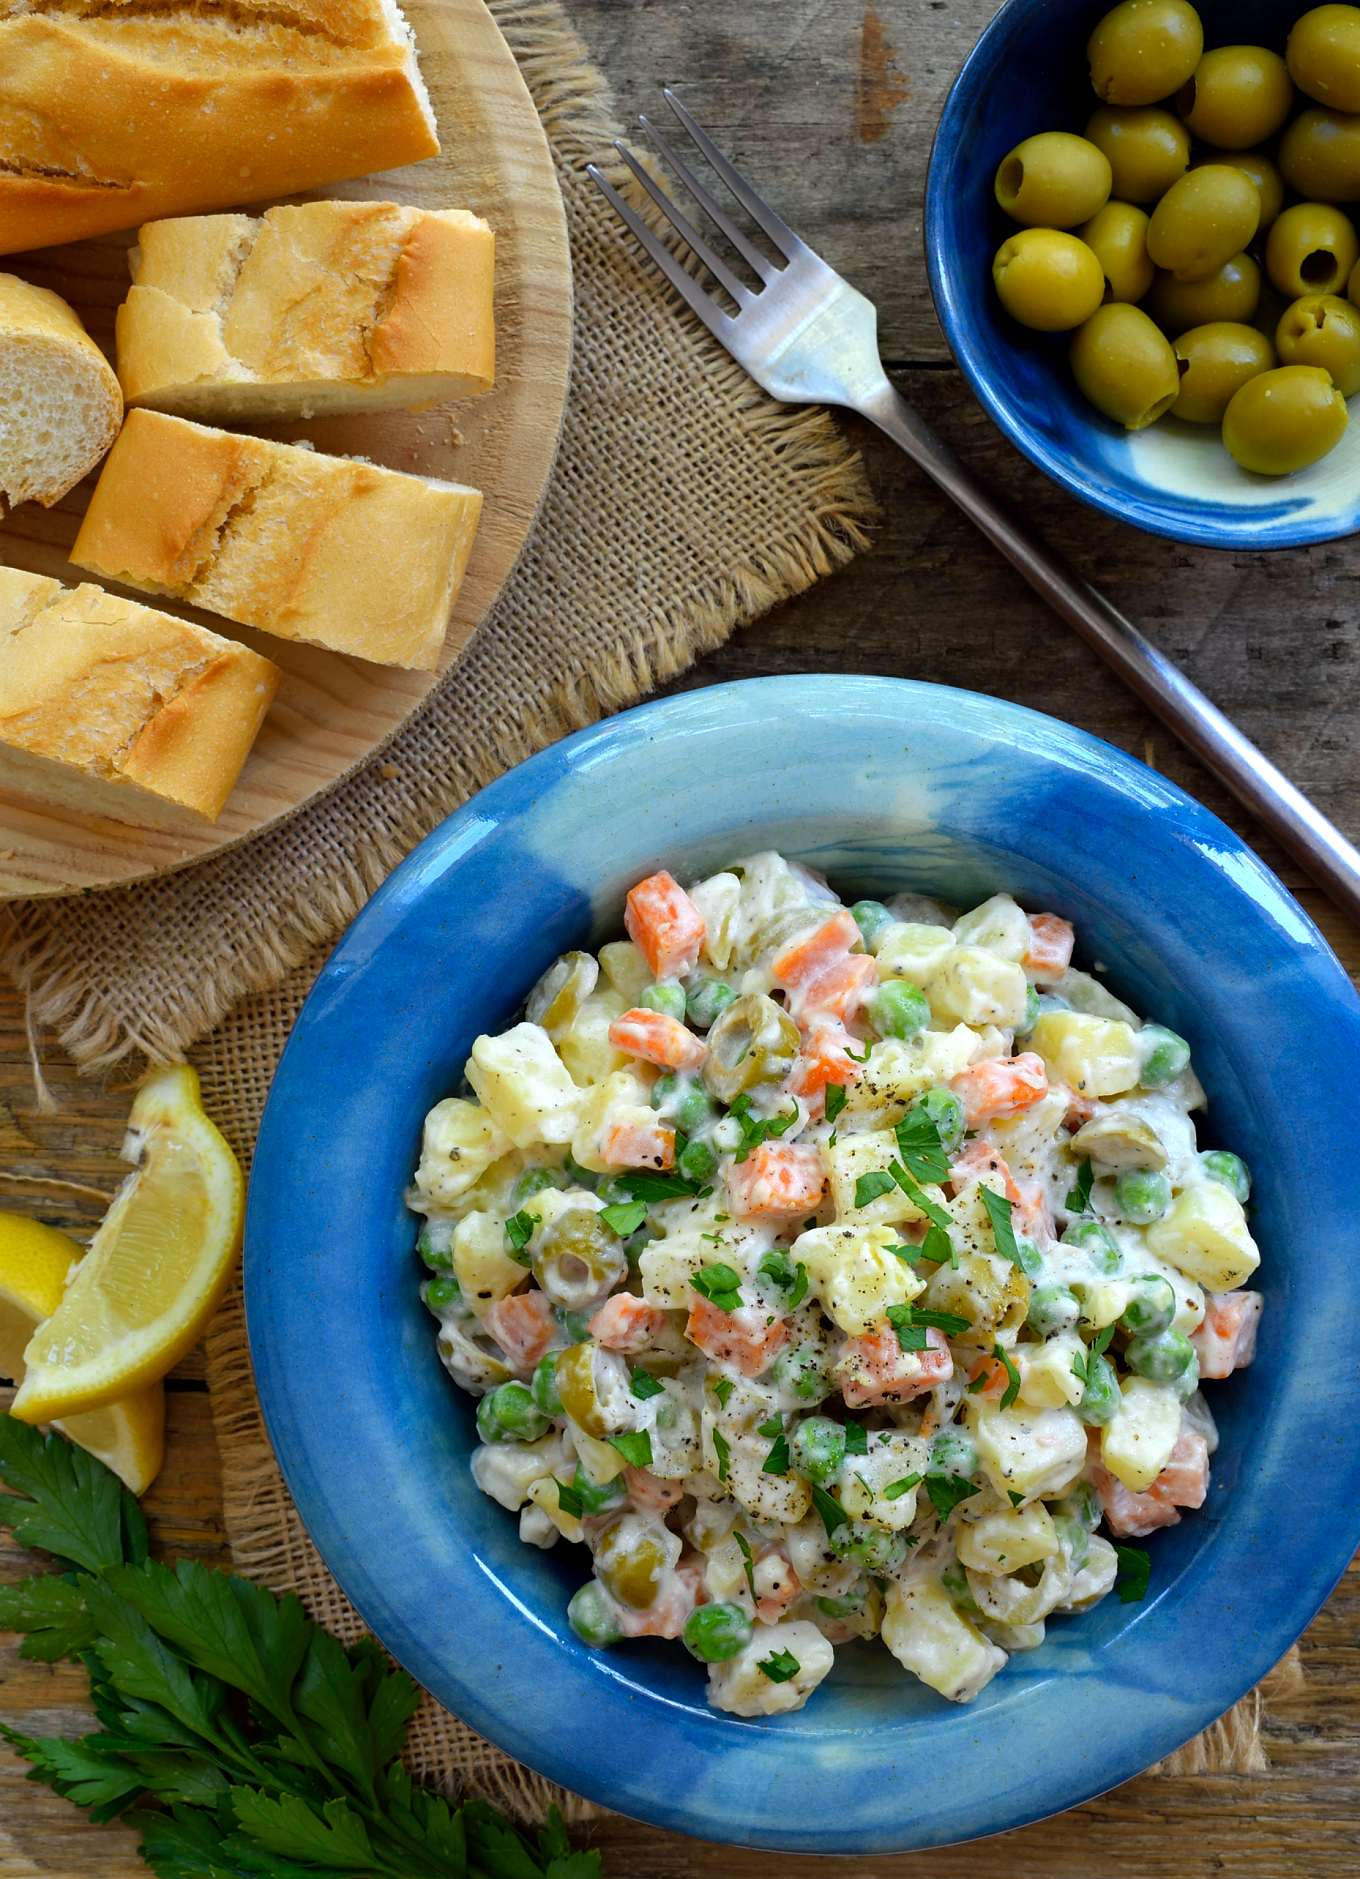 Spanish potato salad ensaladilla rusa cilantro and citronella heres a recipe for another uber typical spanish tapa ensaladilla rusa or vegan russian forumfinder Image collections